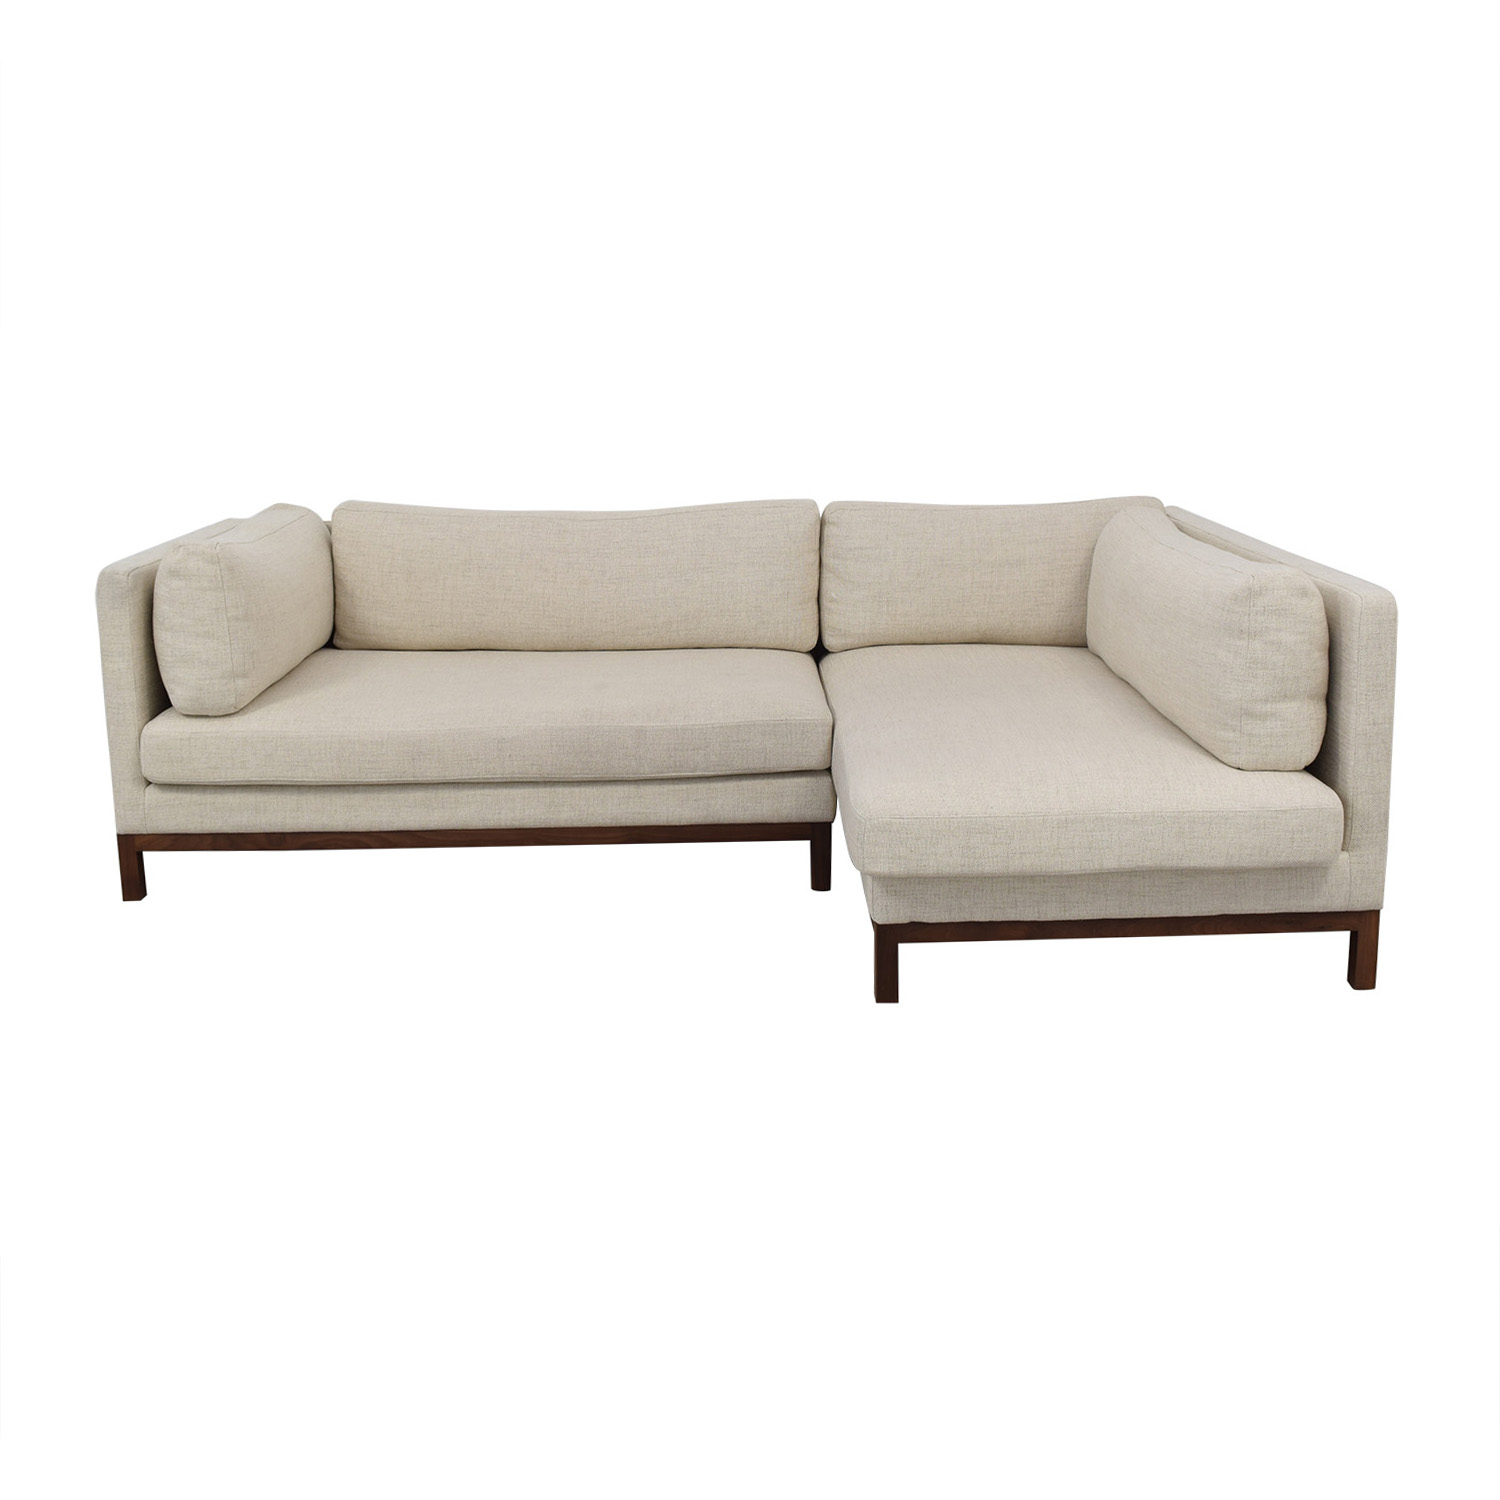 Interior Define Jasper Pebble Weave Right Chaise Sectional Sectionals